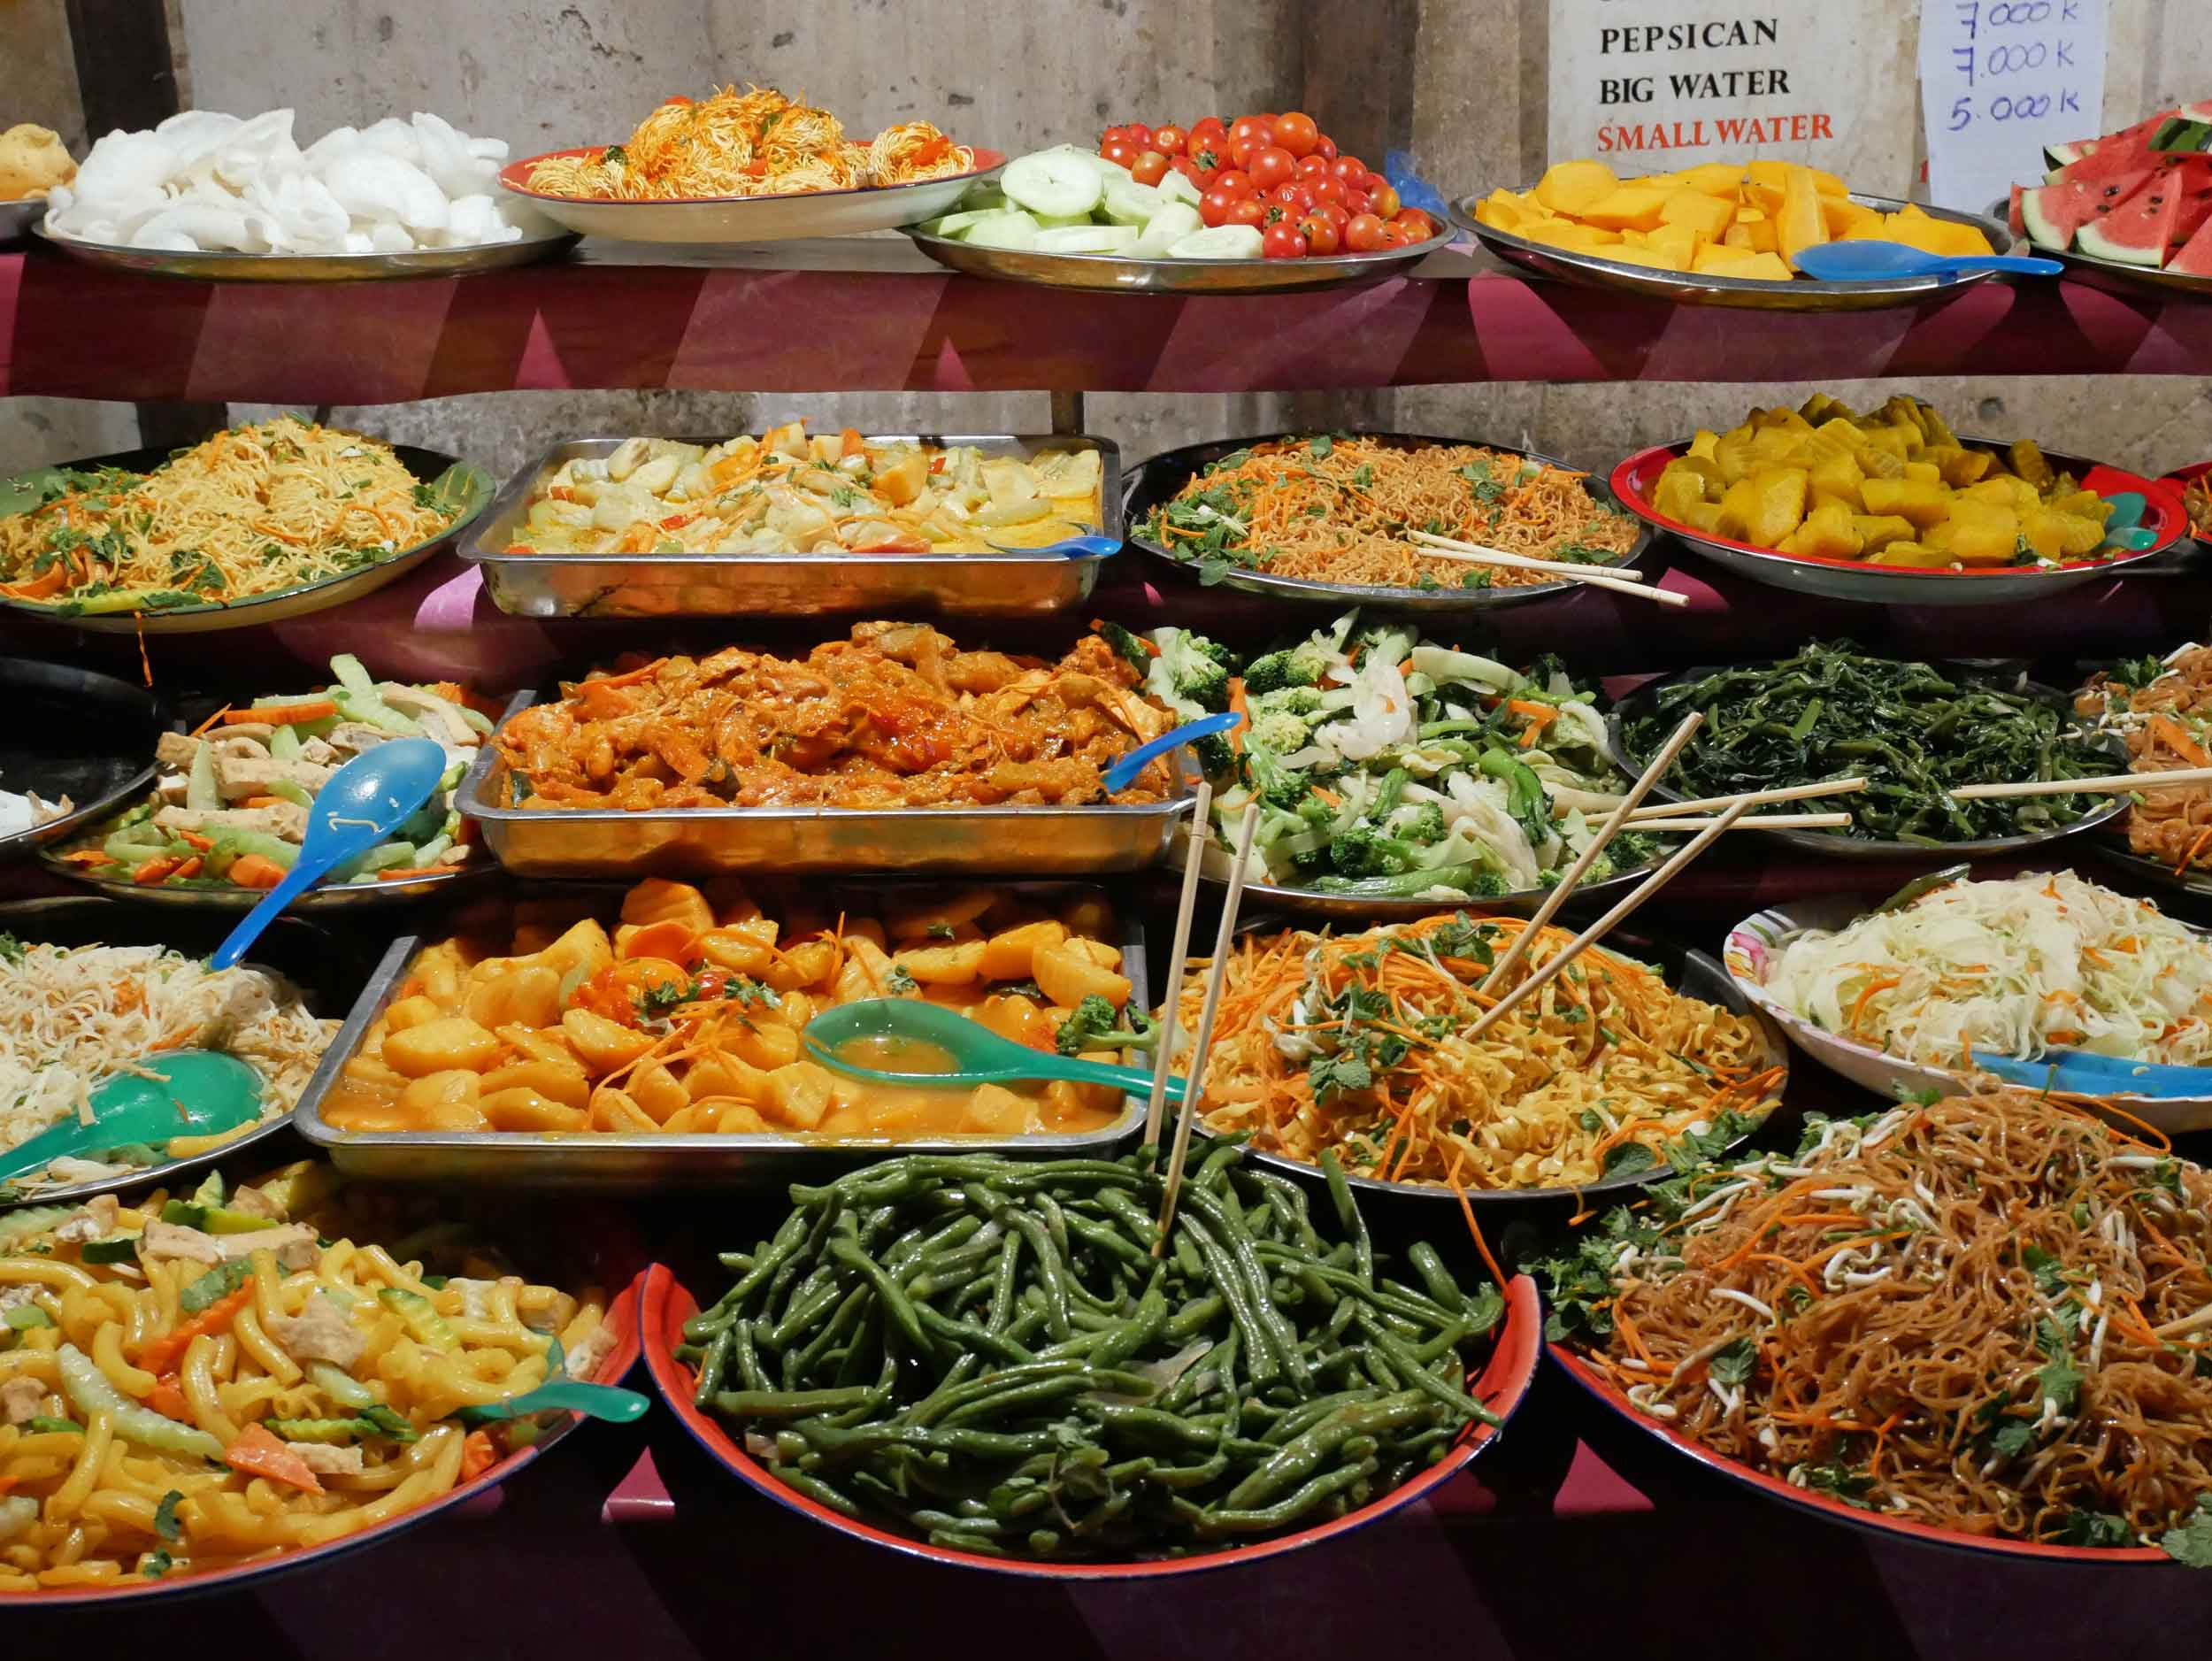 For less than $2 USD, market visitors could fill their plates with heaps of local food, served hot or cold.